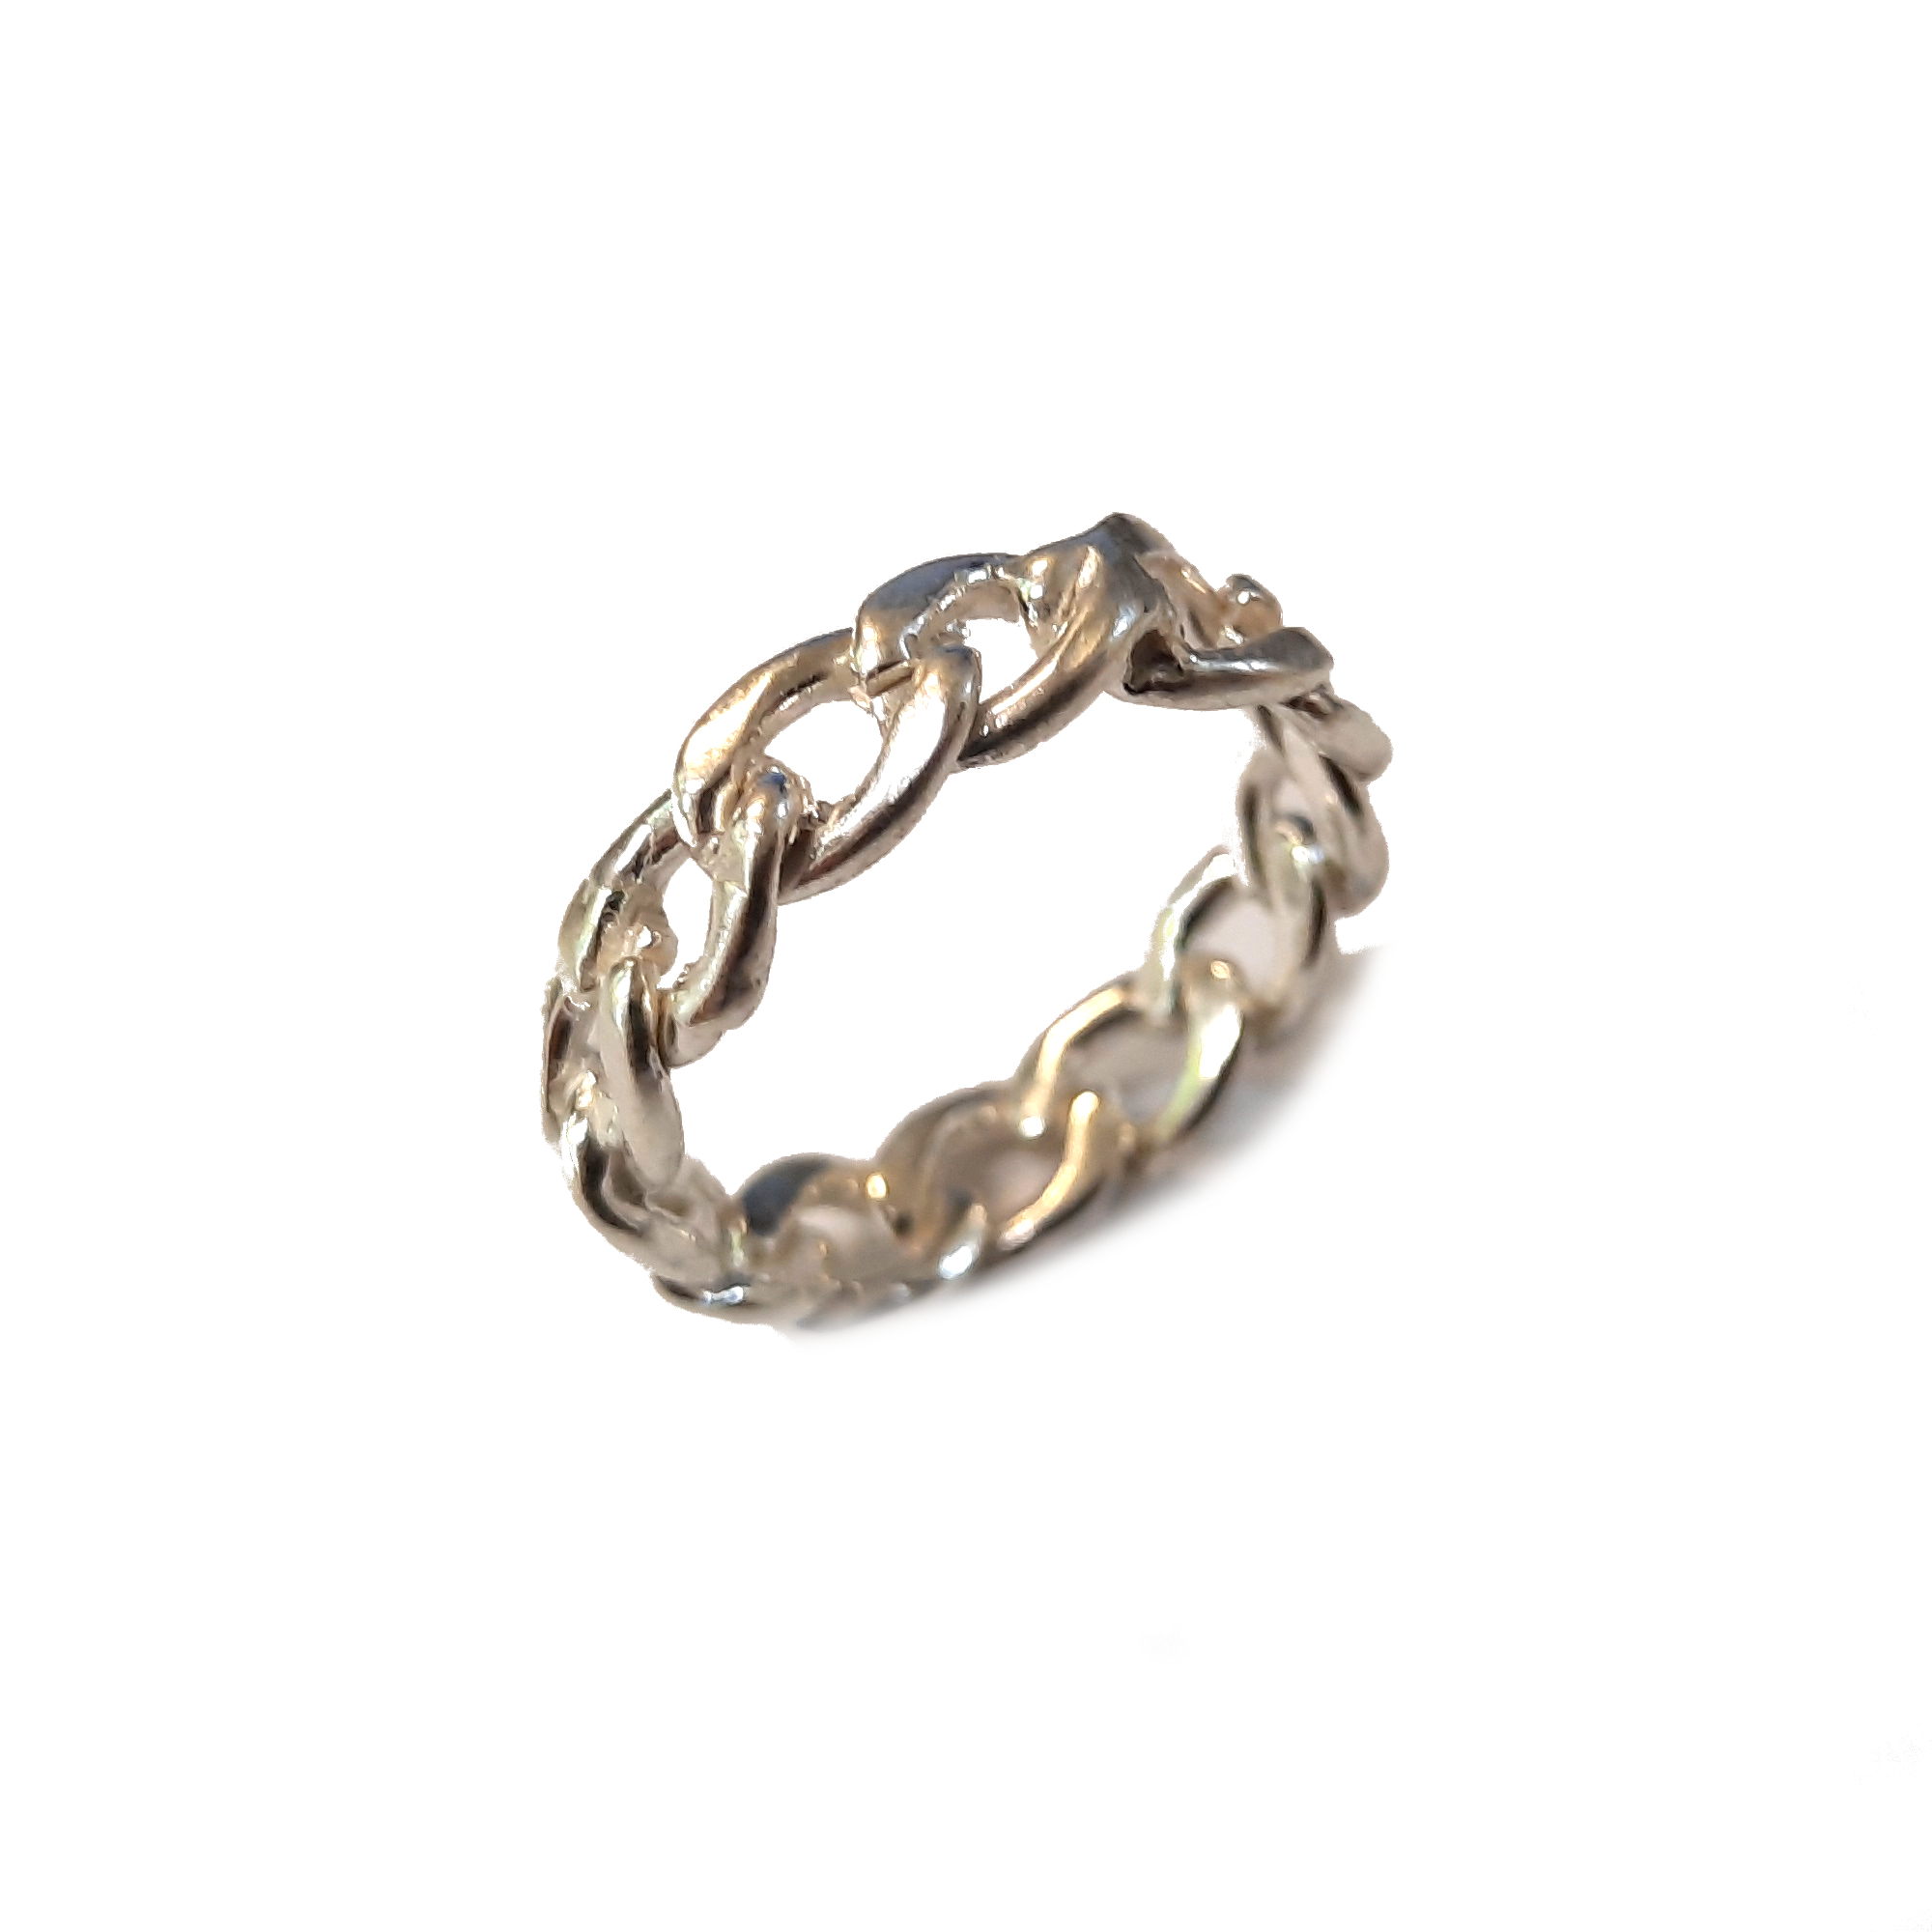 Silver ring - R002188